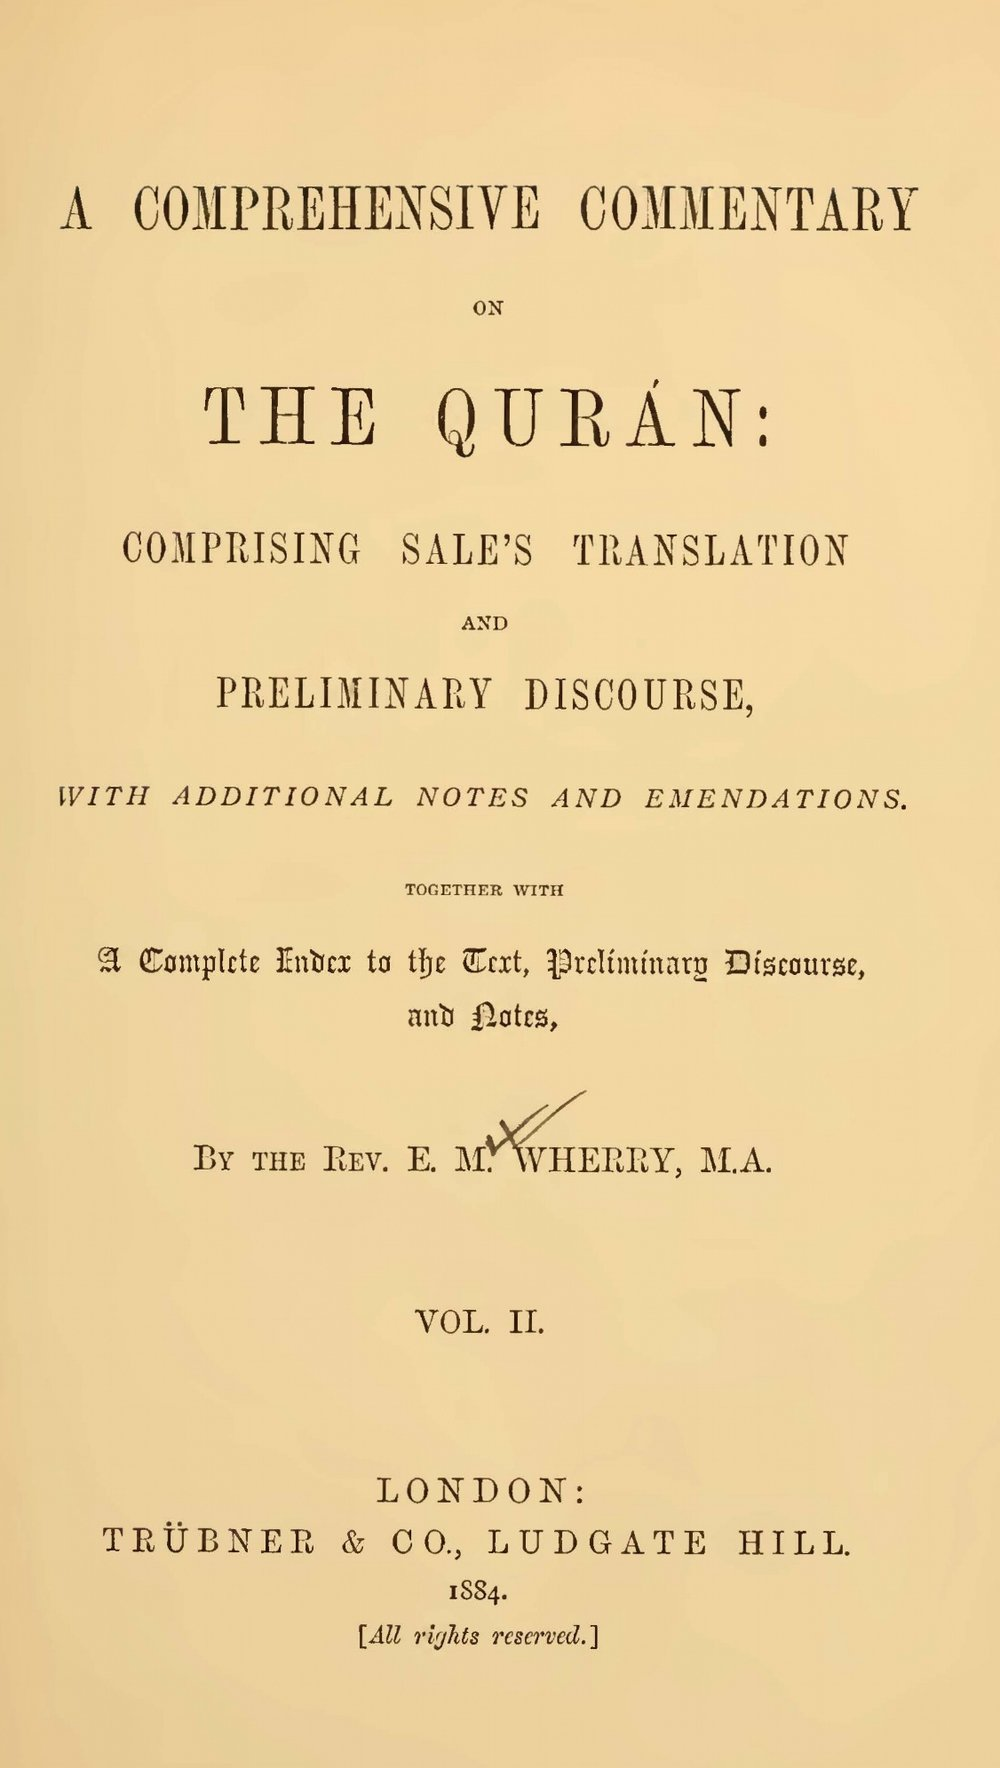 Wherry, Elwood Morris, A Comprehensive Commentary on the Quran, Vol. 2 Title Page.jpg